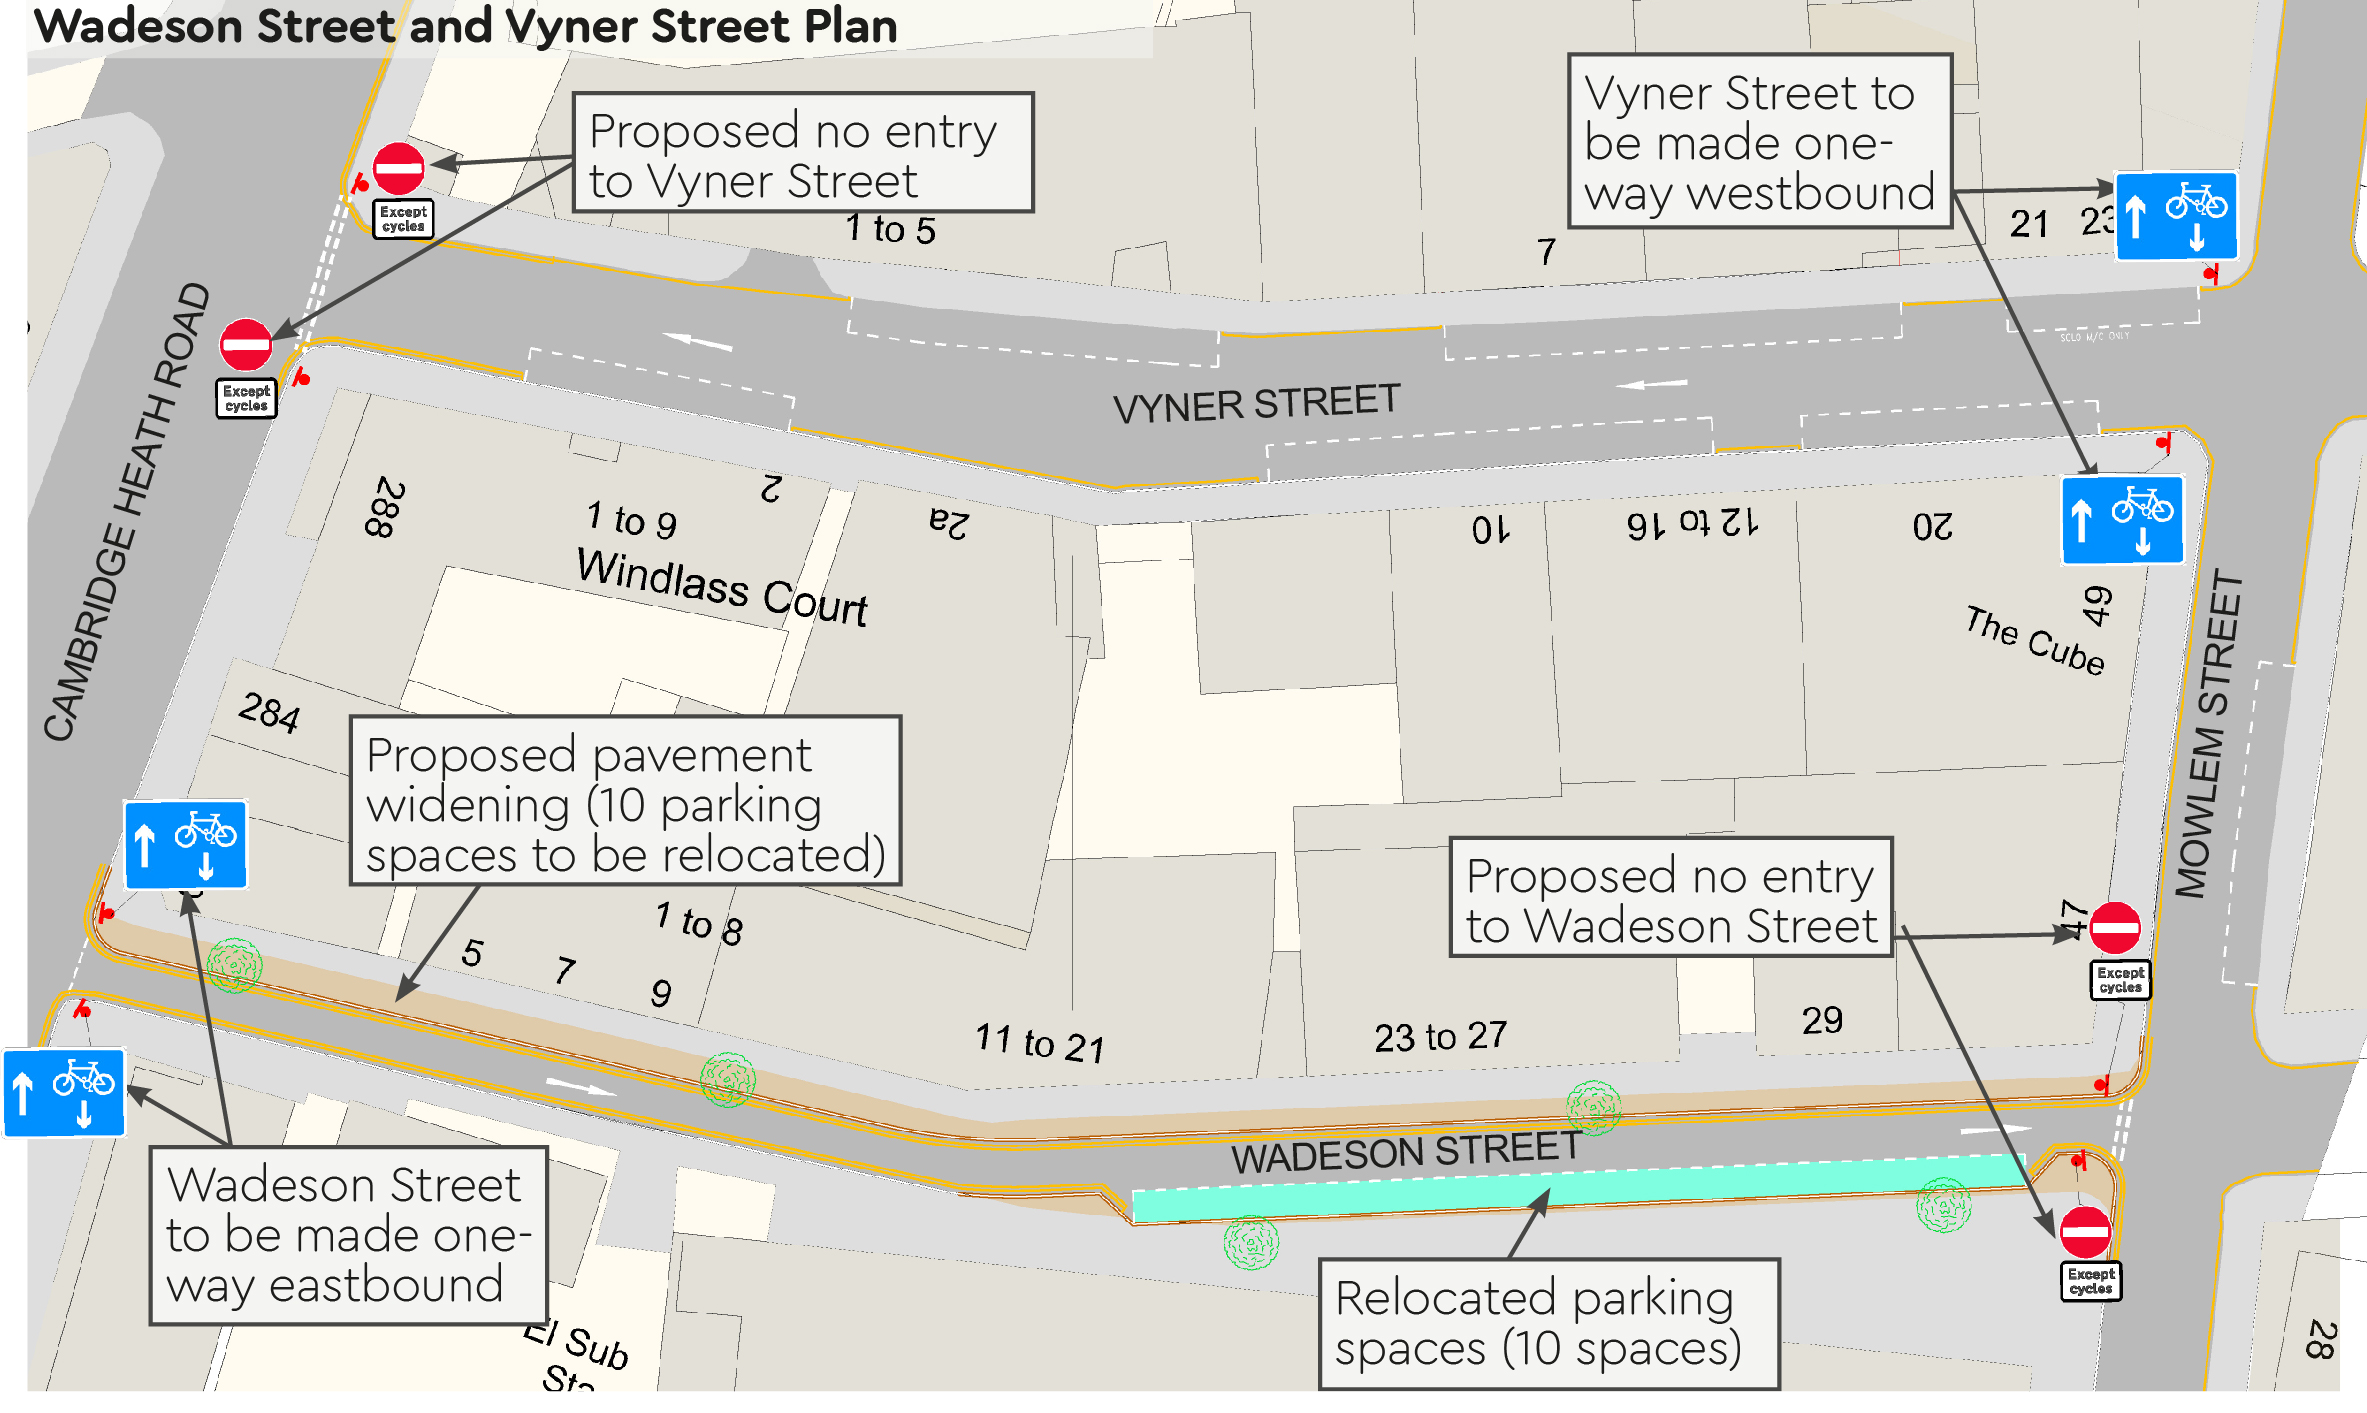 Wadeson Street and Vyner Street plan: proposed no entry to Vyner Street and made one-way westbound, Wadeson Street to be made one-way eastbound and no entry at junction with Mowlem Street, proposed pavement widening on Wadeson Street with relocated parking bays.